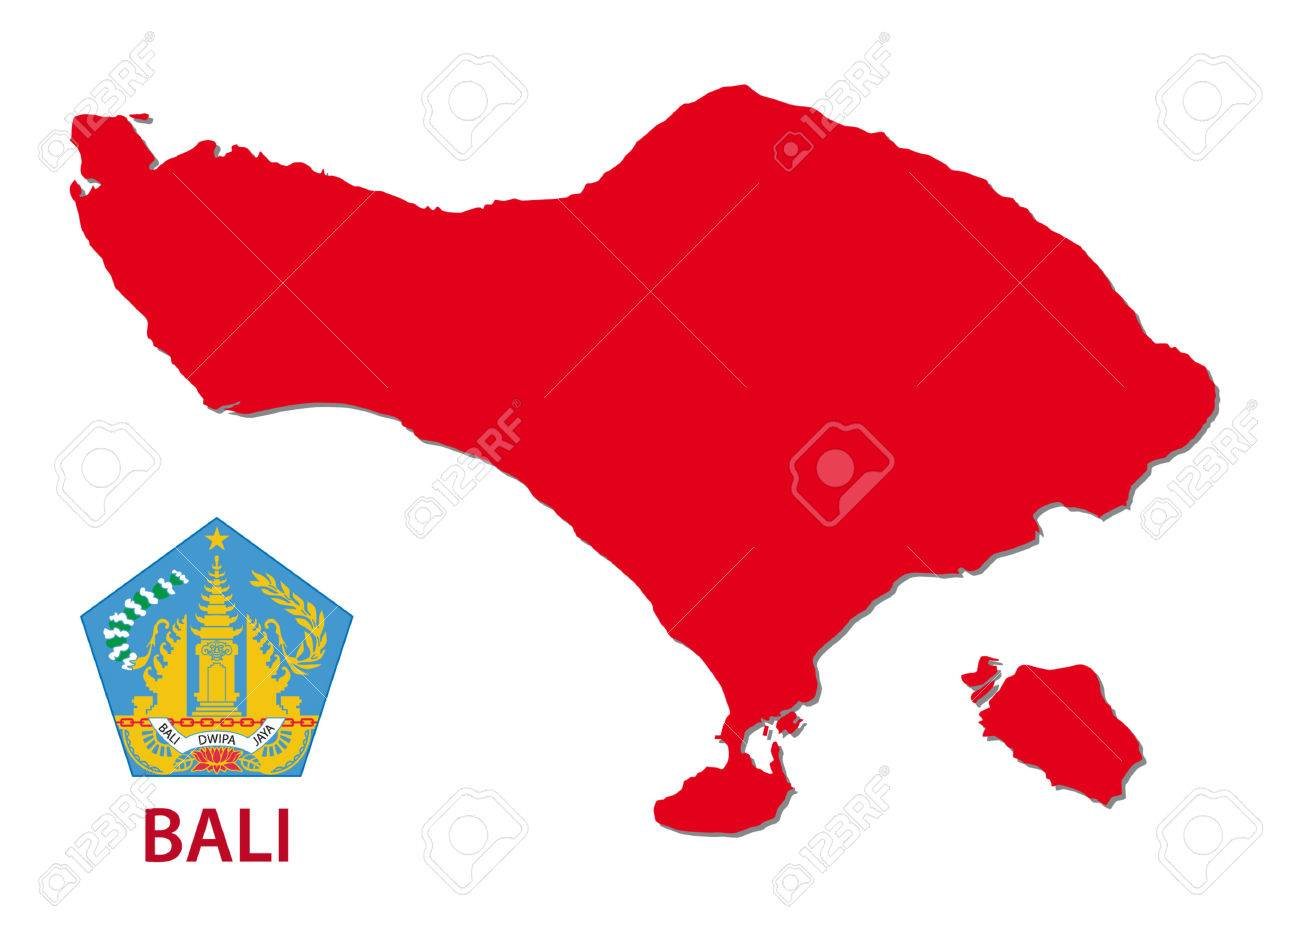 Bali Map With Emblem Royalty Free Cliparts Vectors And Stock